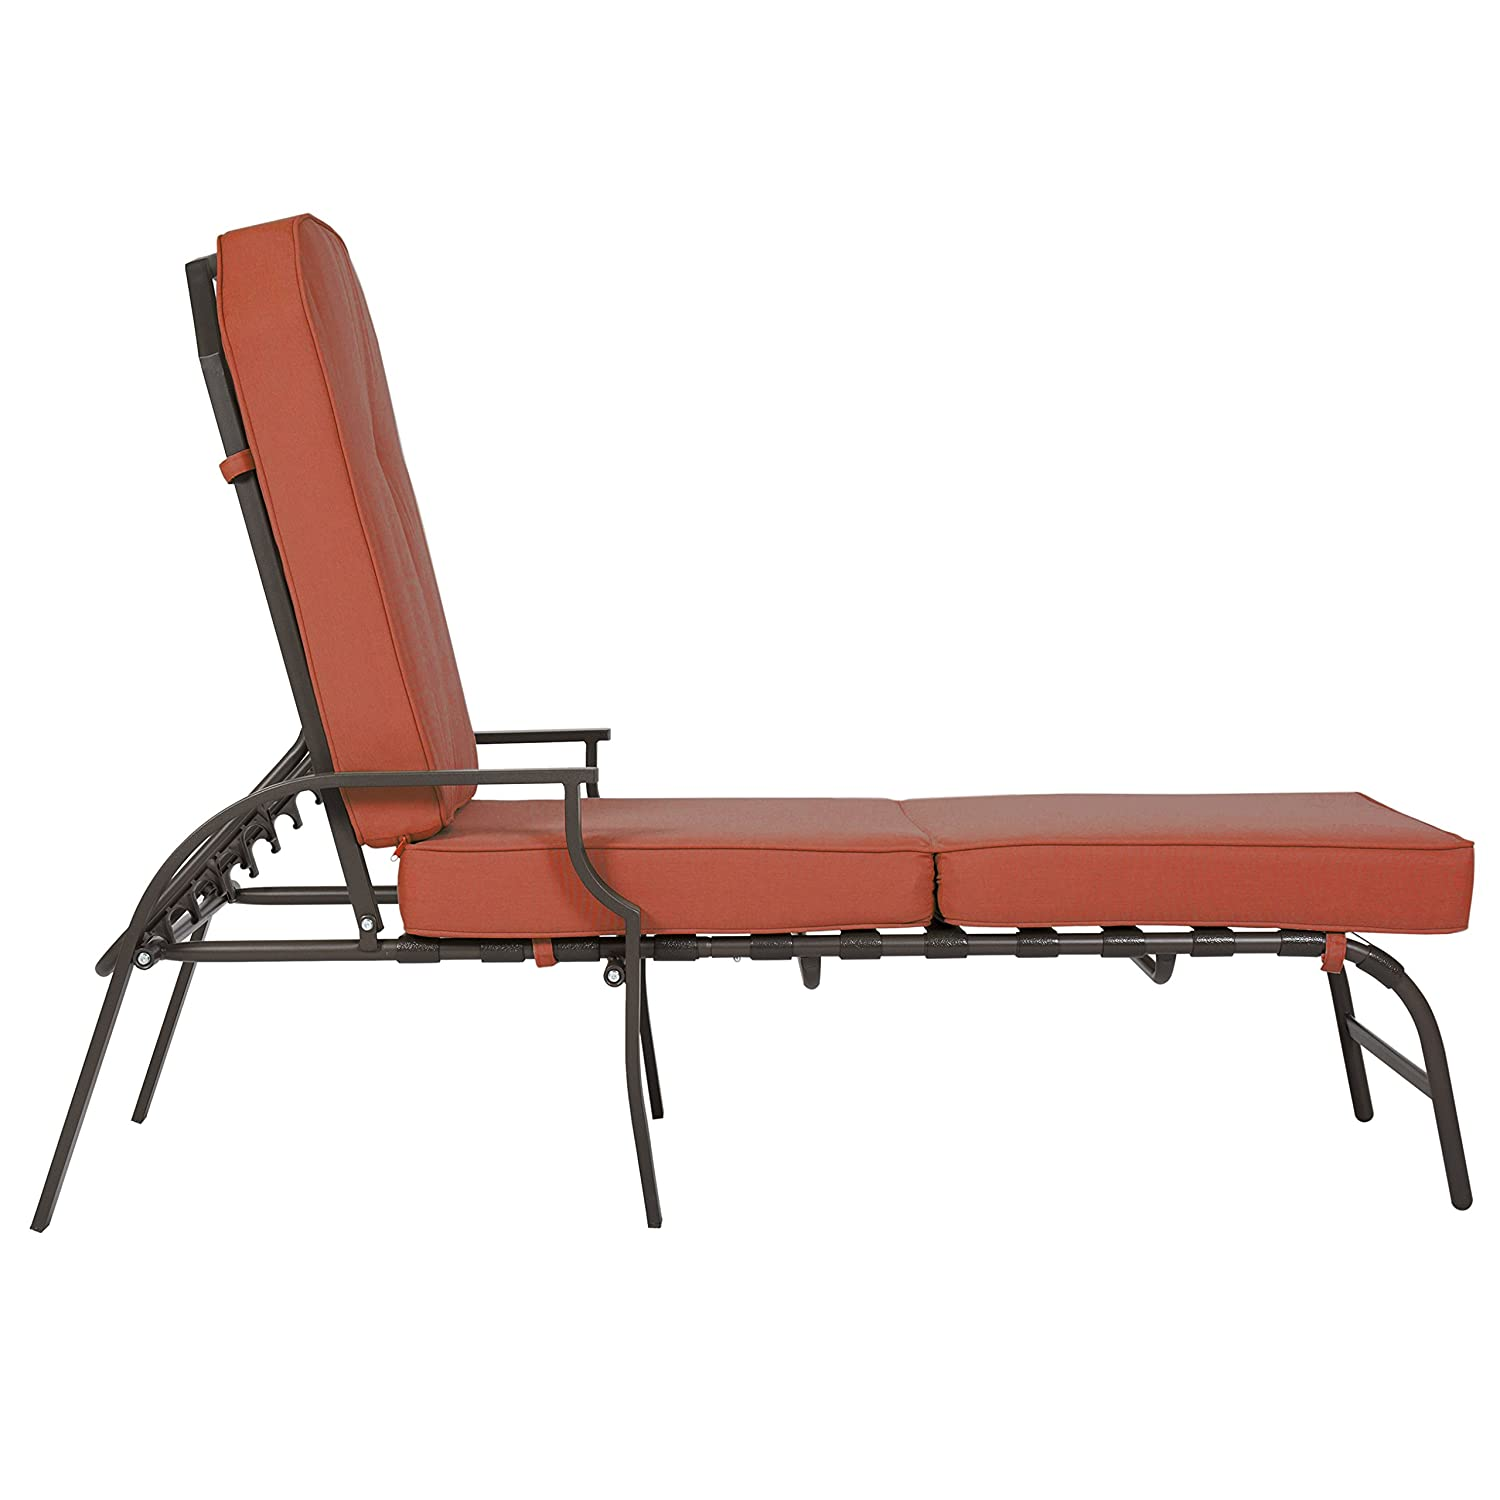 Patio chaise lounge marco island brownstone commercial for 23 w outdoor cushion for chaise